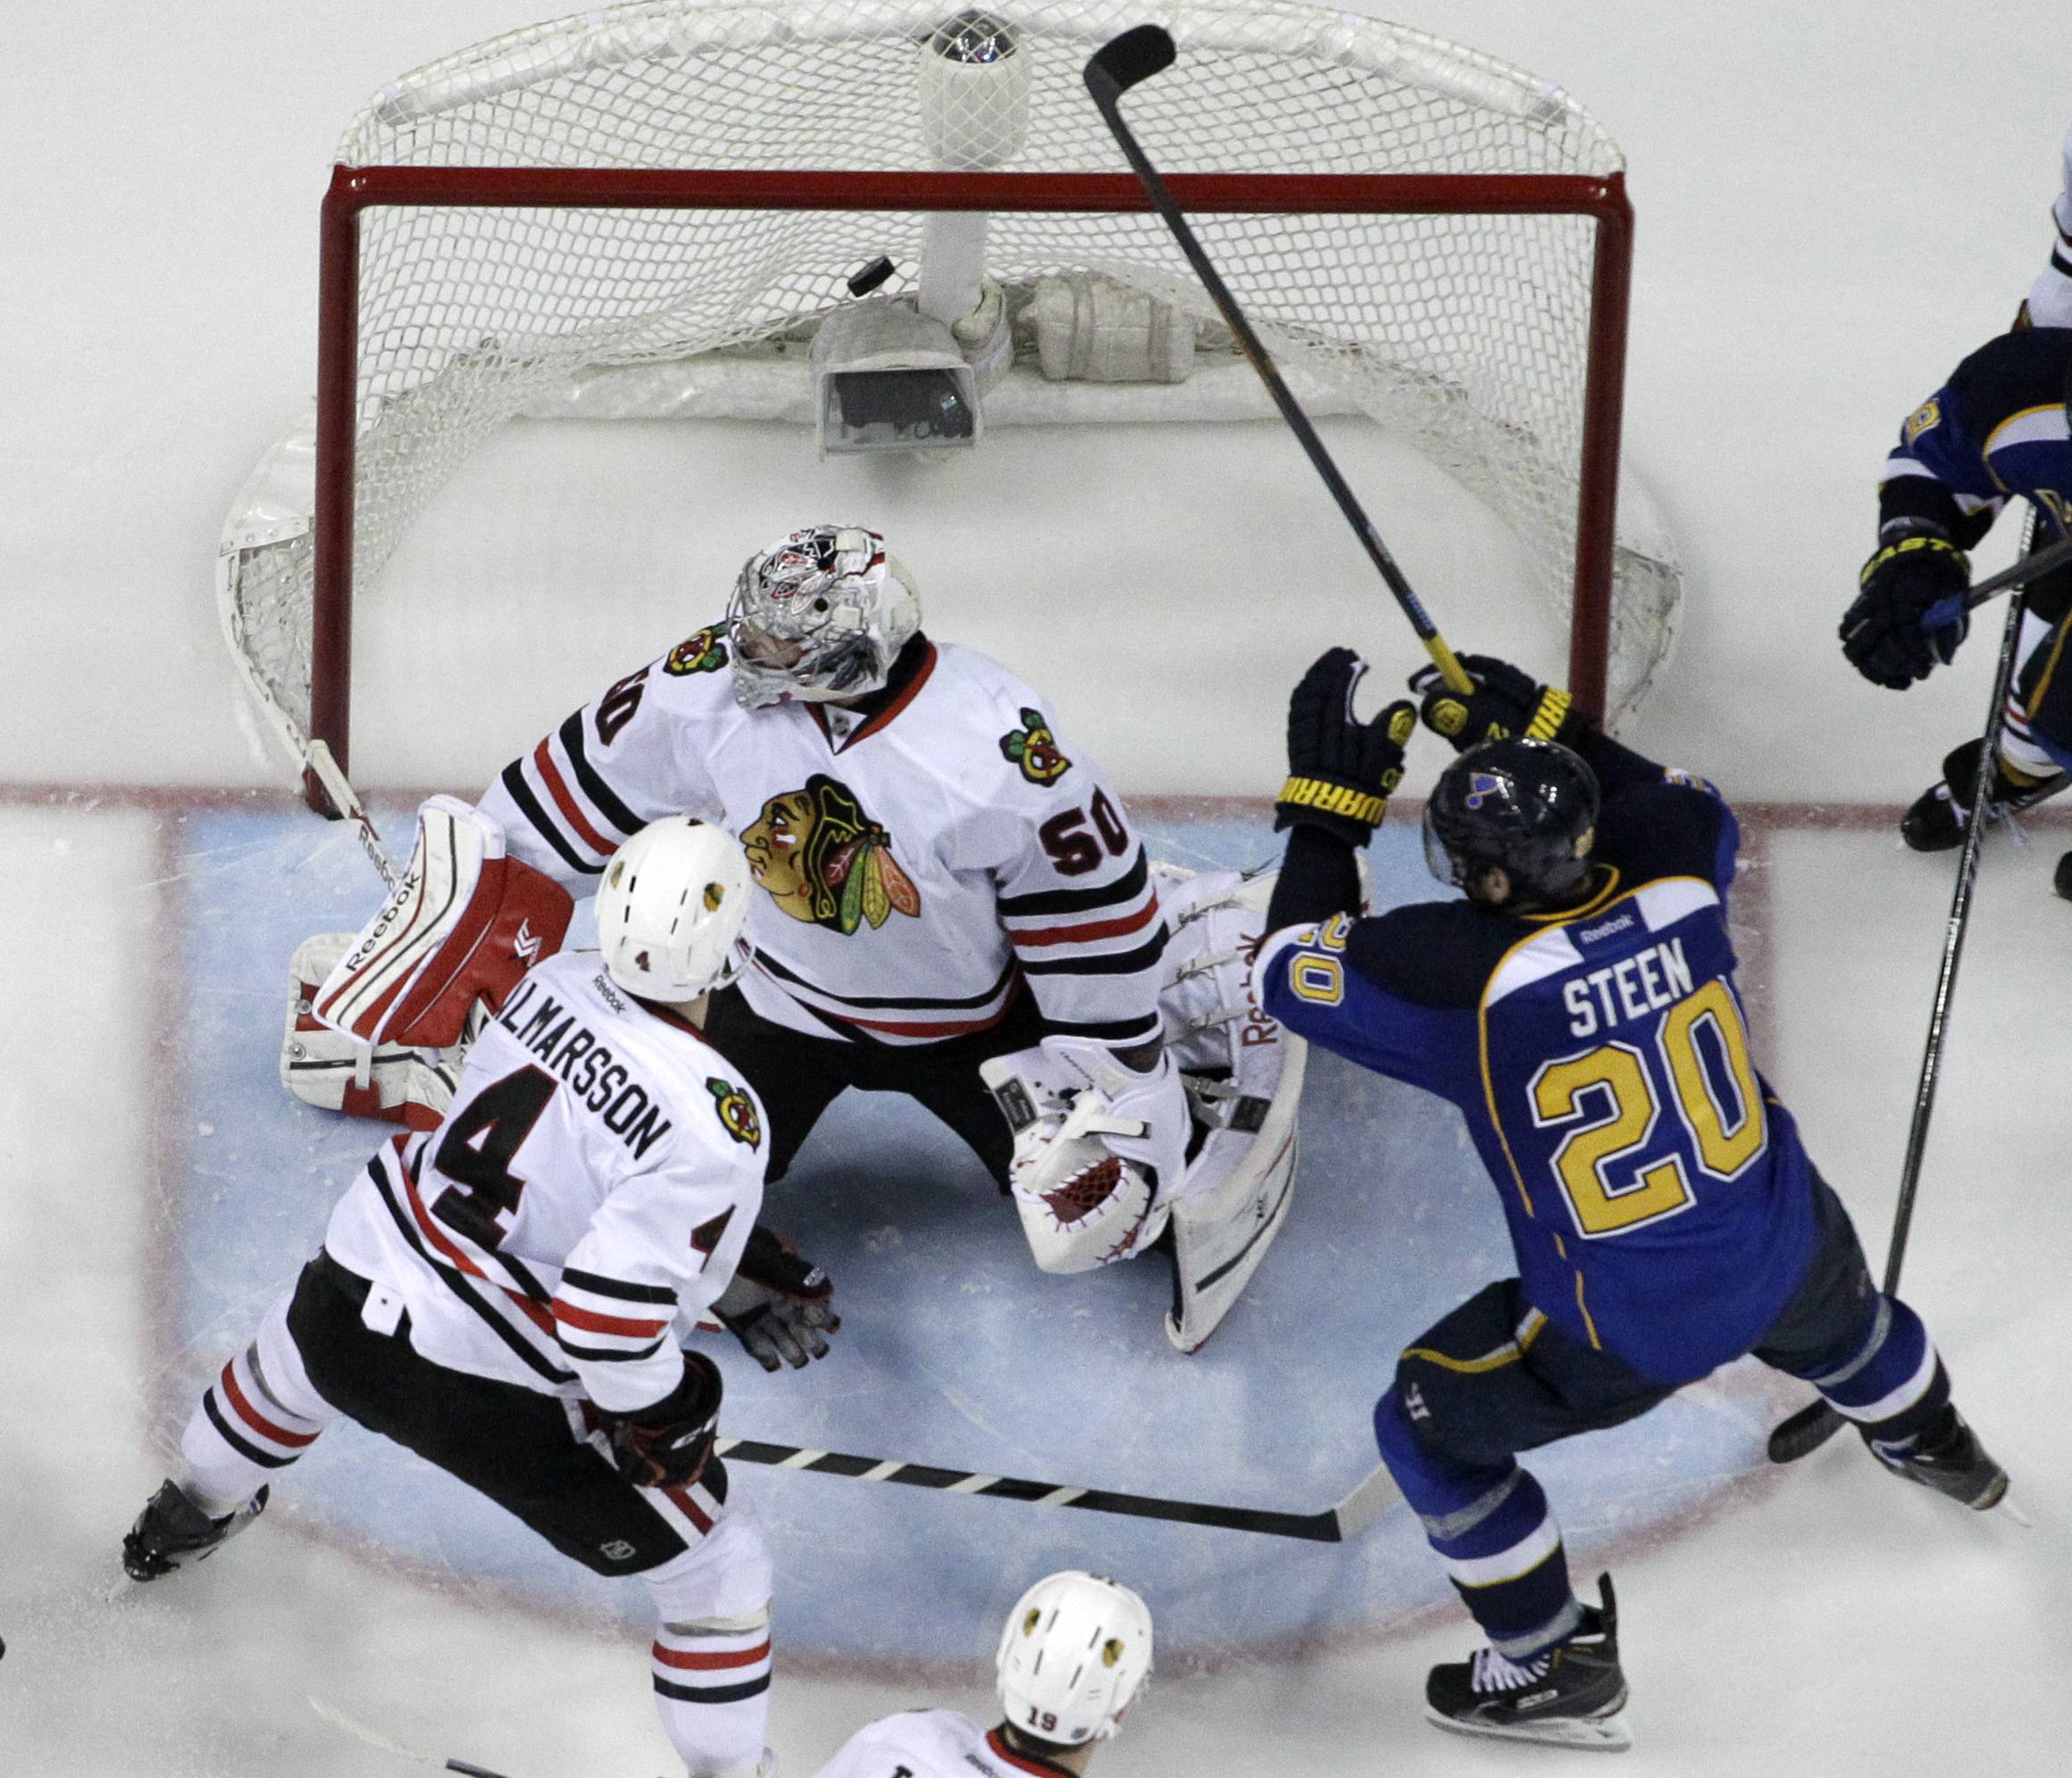 St. Louis Blues' Alexander Steen (20) scores the game-winning goal past Chicago Blackhawks goalie Corey Crawford and Niklas Hjalmarsson (4) during the third overtime.